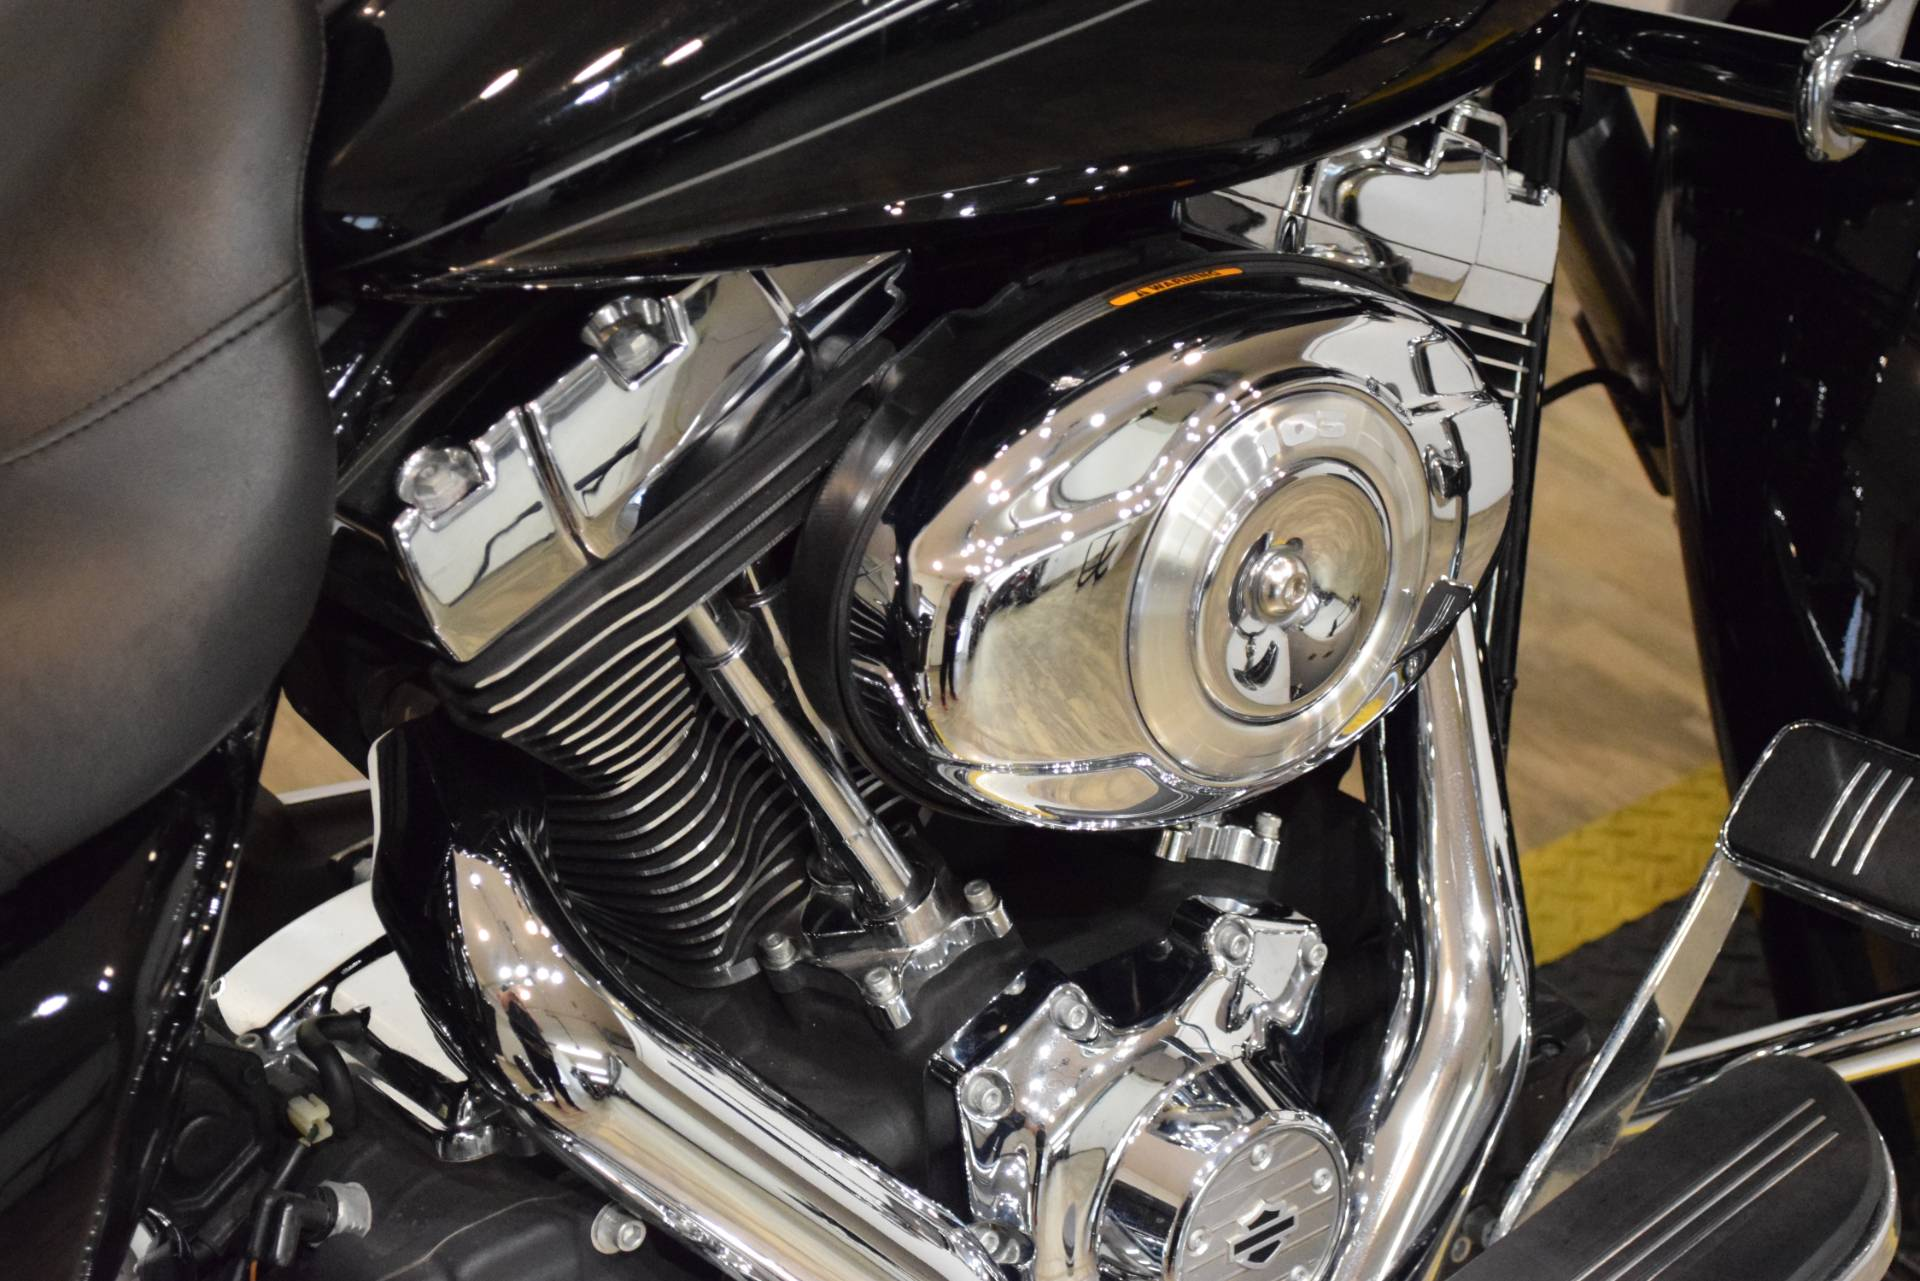 2013 Harley-Davidson Road Glide® Custom in Wauconda, Illinois - Photo 7